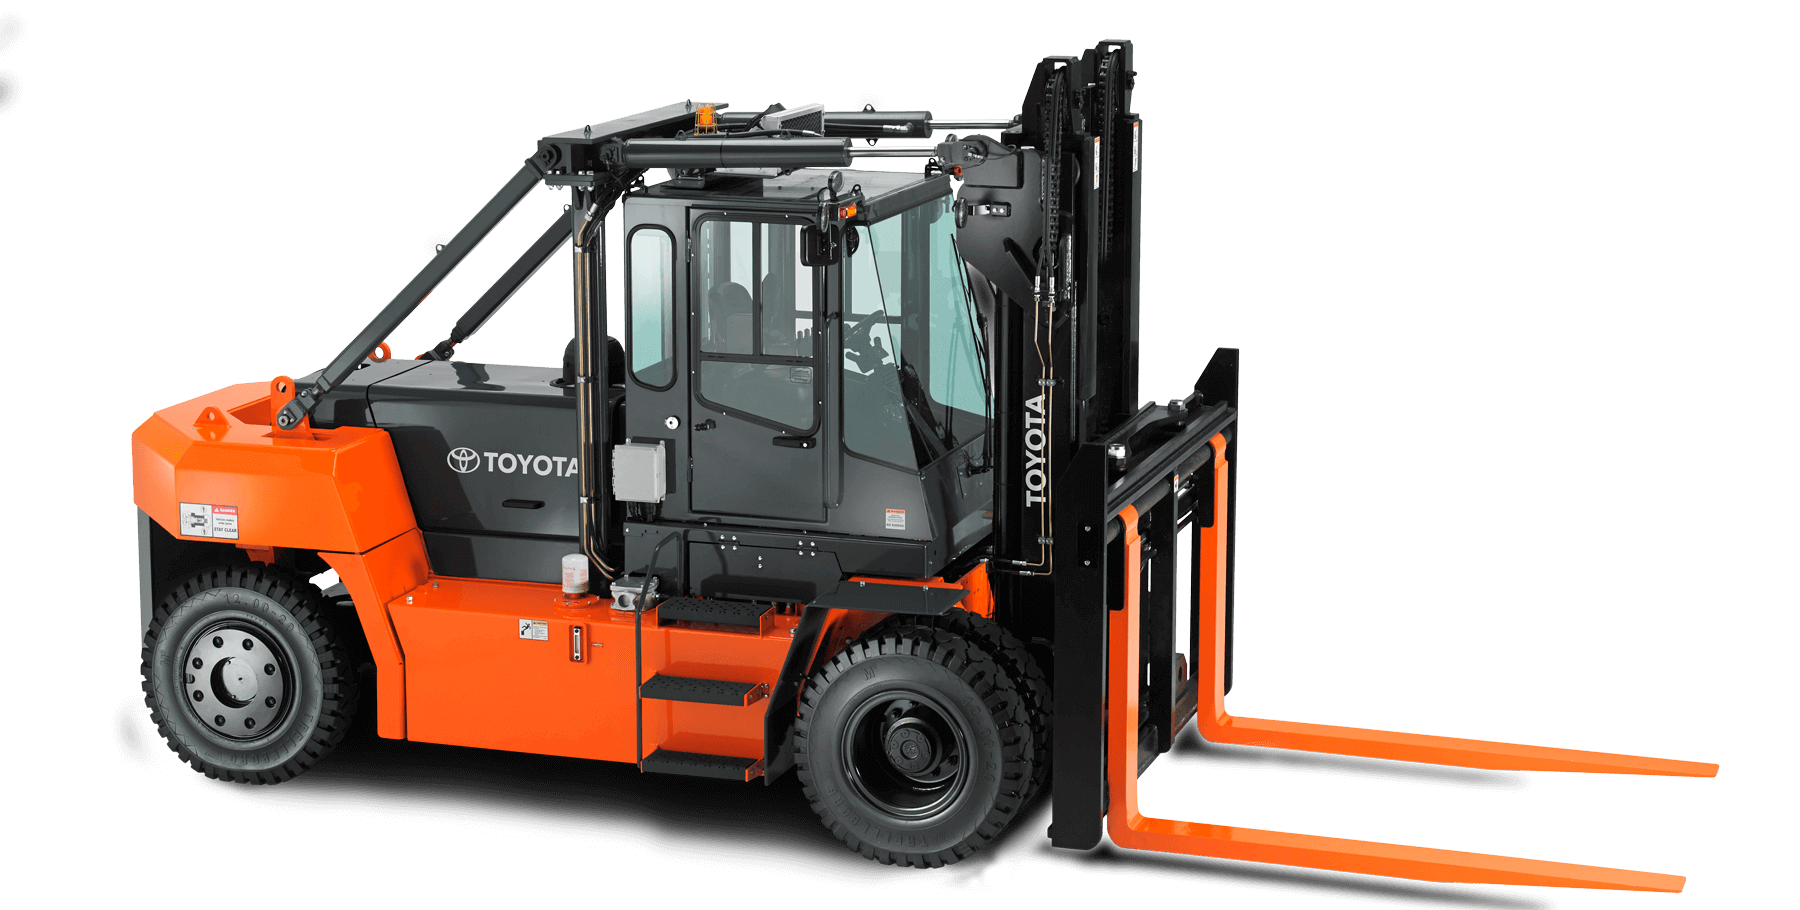 Electric forklift toyota Motorized forklift